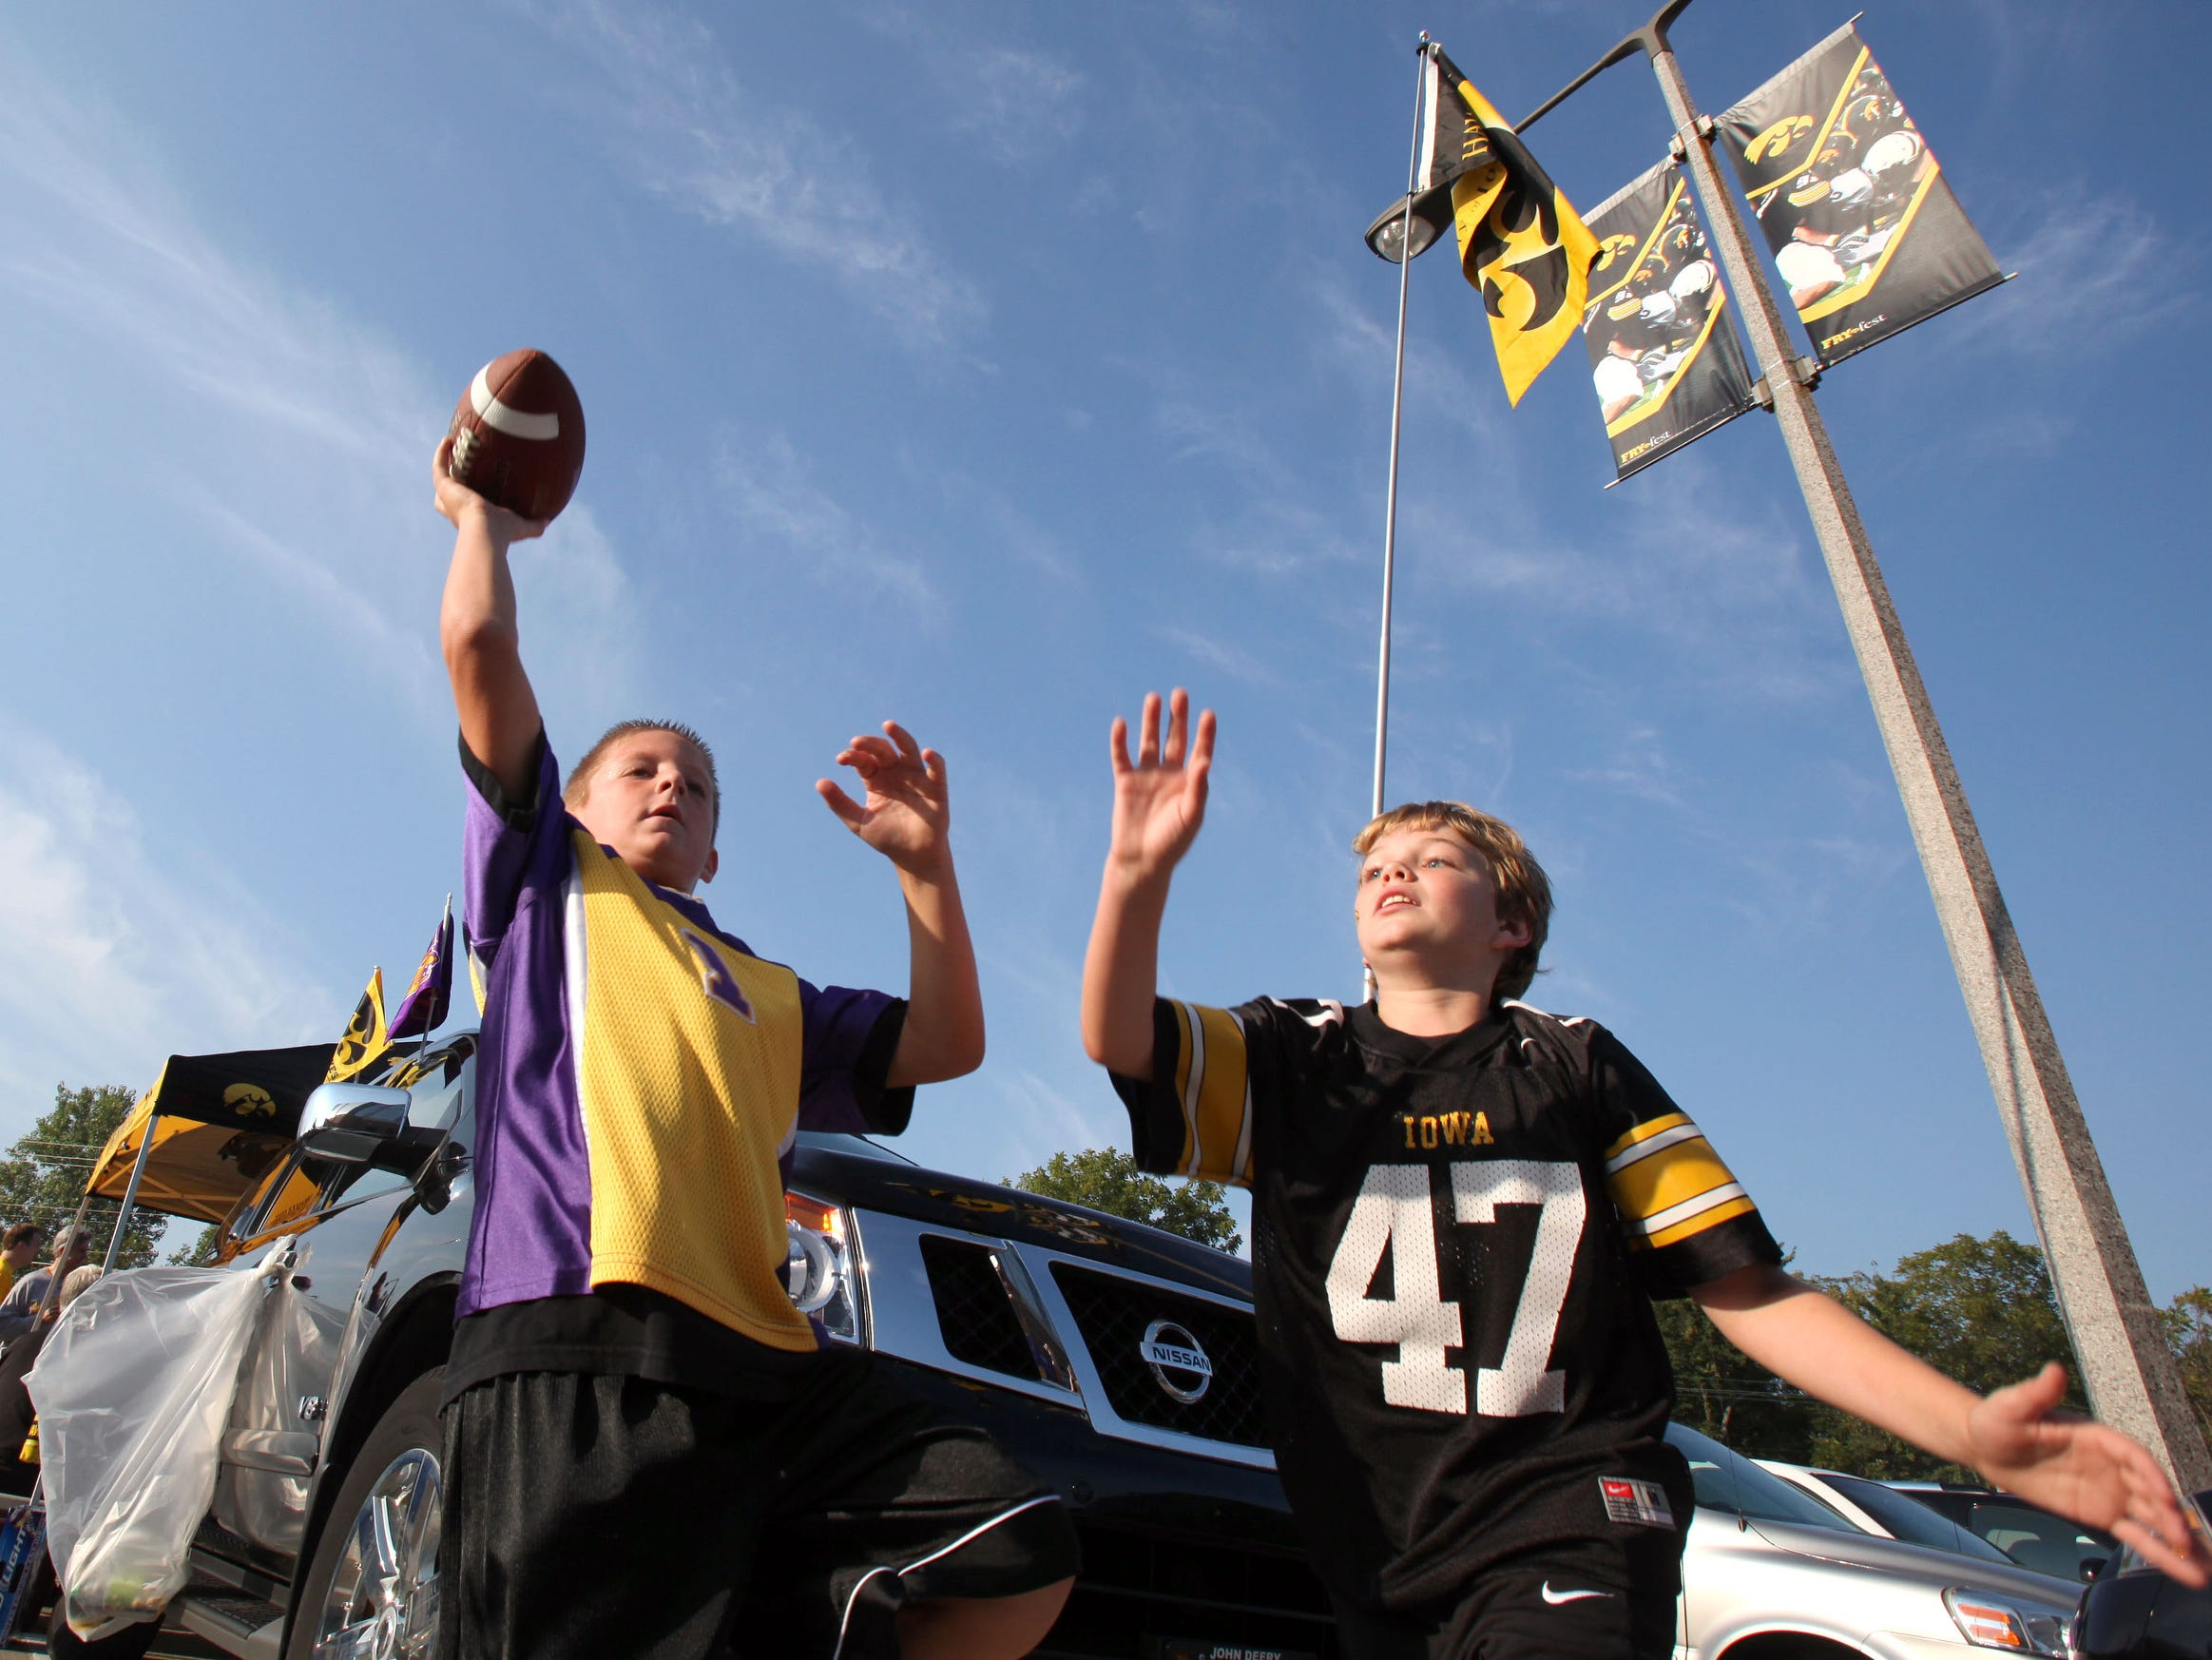 Panthers fan Brock Studer, left, 9, and Hawkeyes fan Alex Scanlon, 10, both of Johnston,  play a pick up game of football before Iowa's football season opener against Northern Iowa on Sept. 5, 2009 in Iowa City.